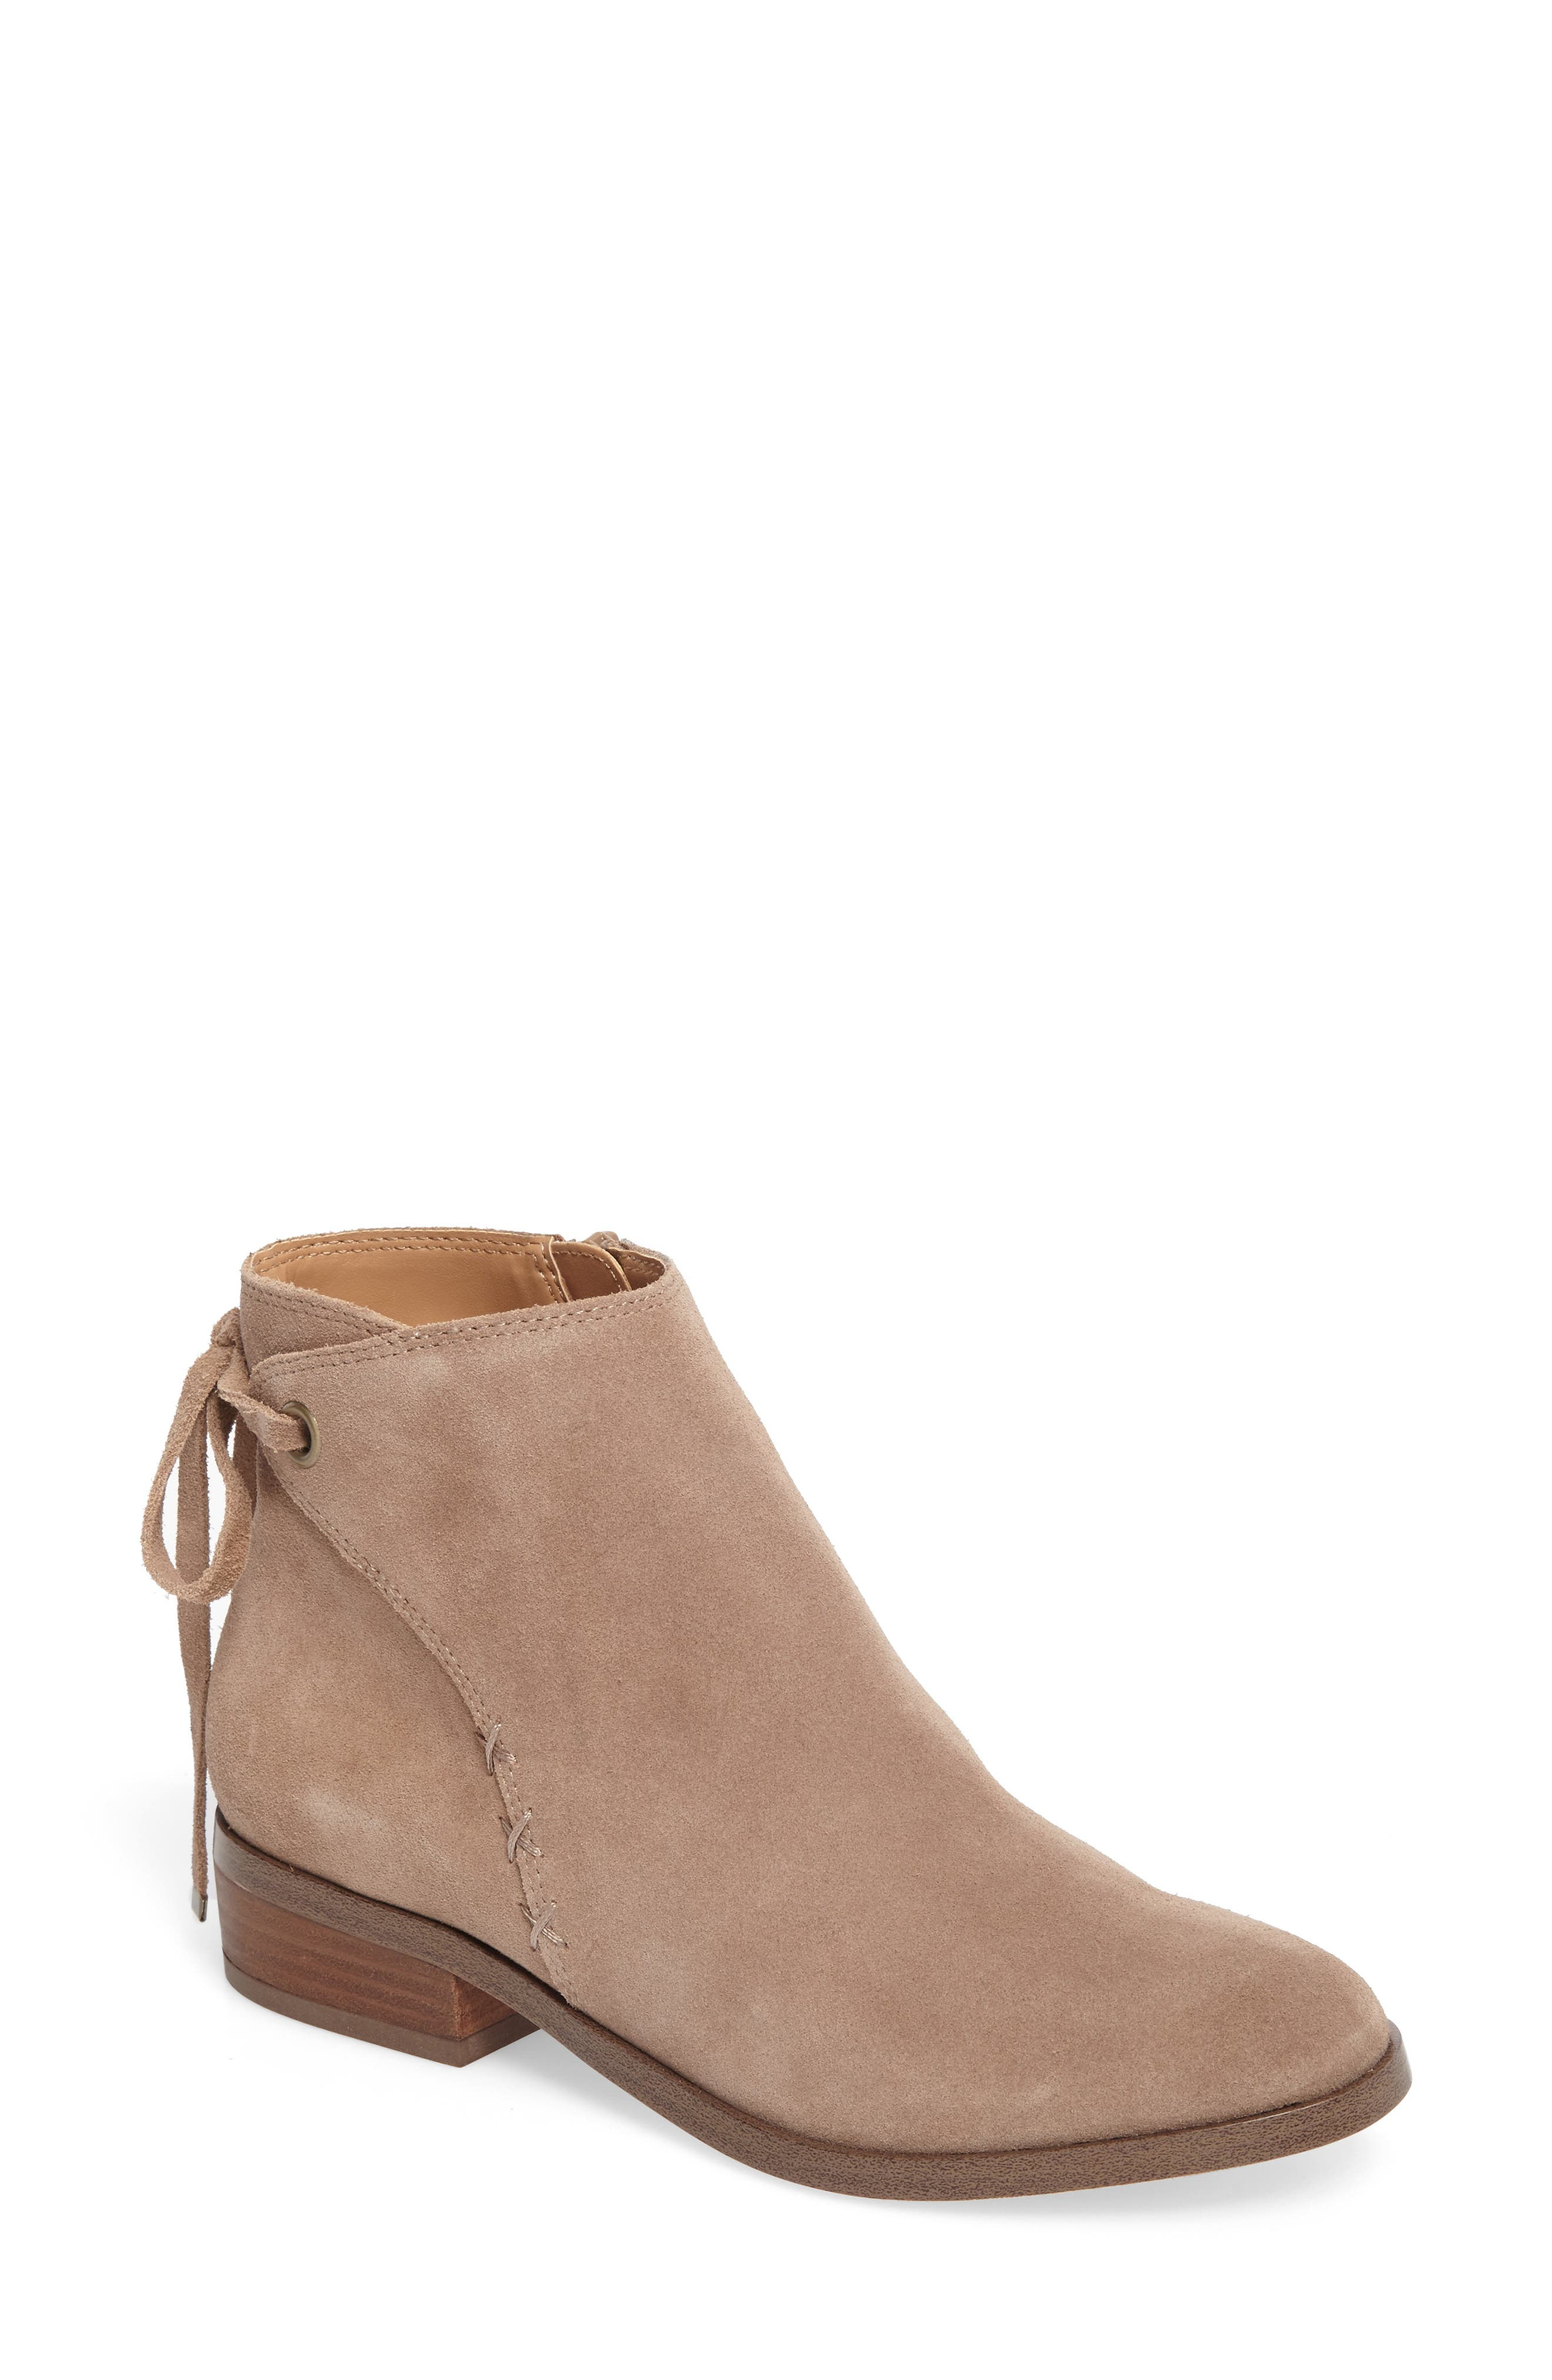 Lachlan Tie Back Bootie,                             Main thumbnail 1, color,                             Taupe